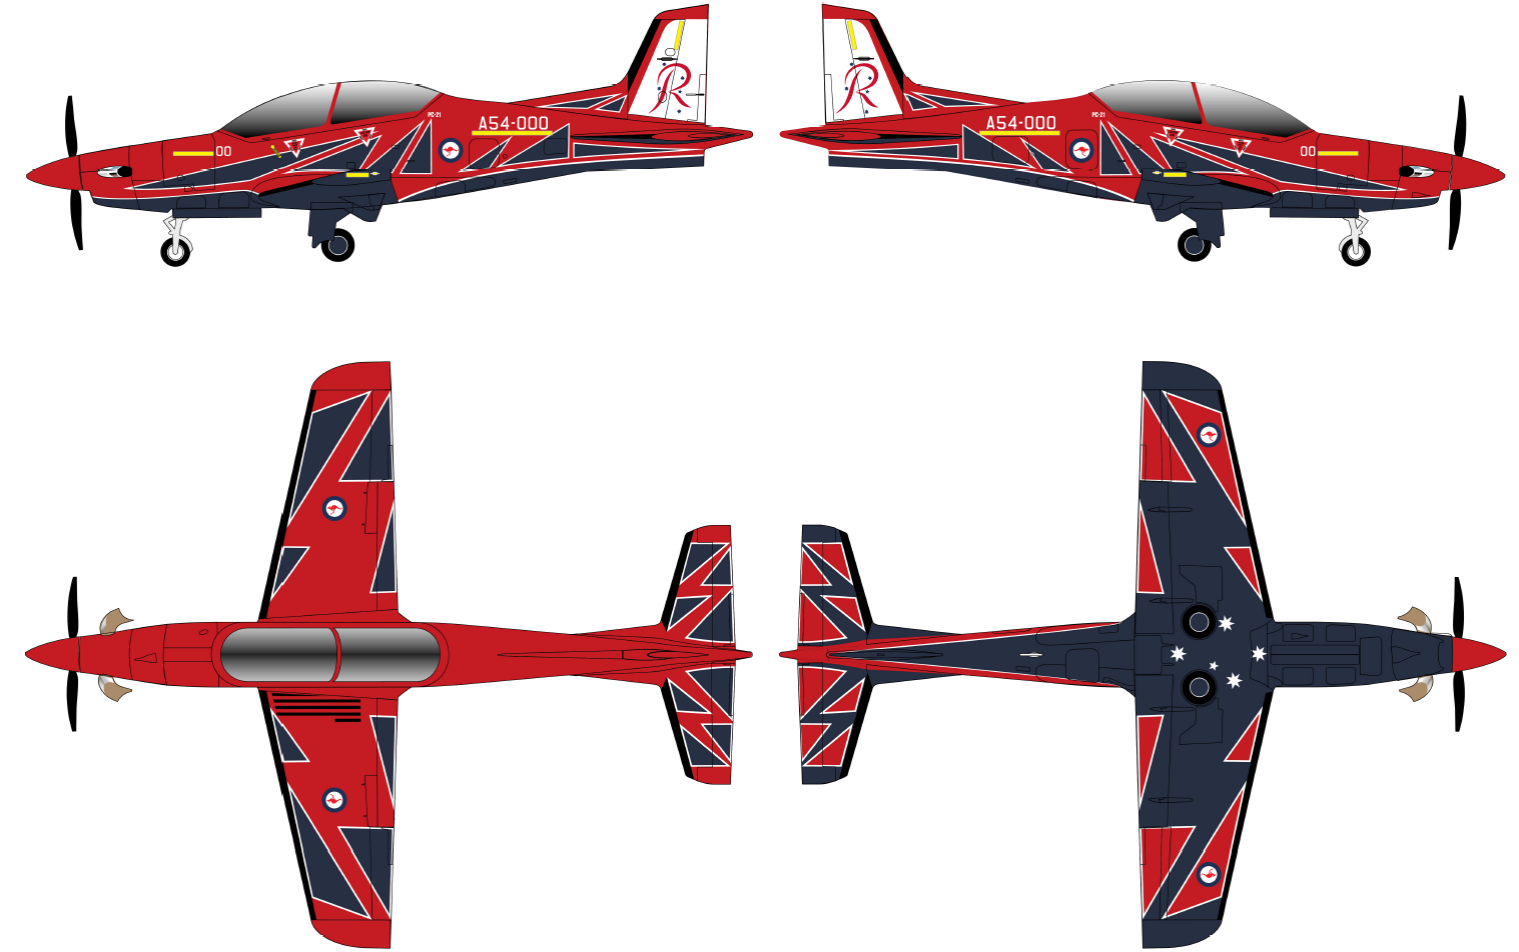 Roulettes new PC-21 livery. Source RAAF website